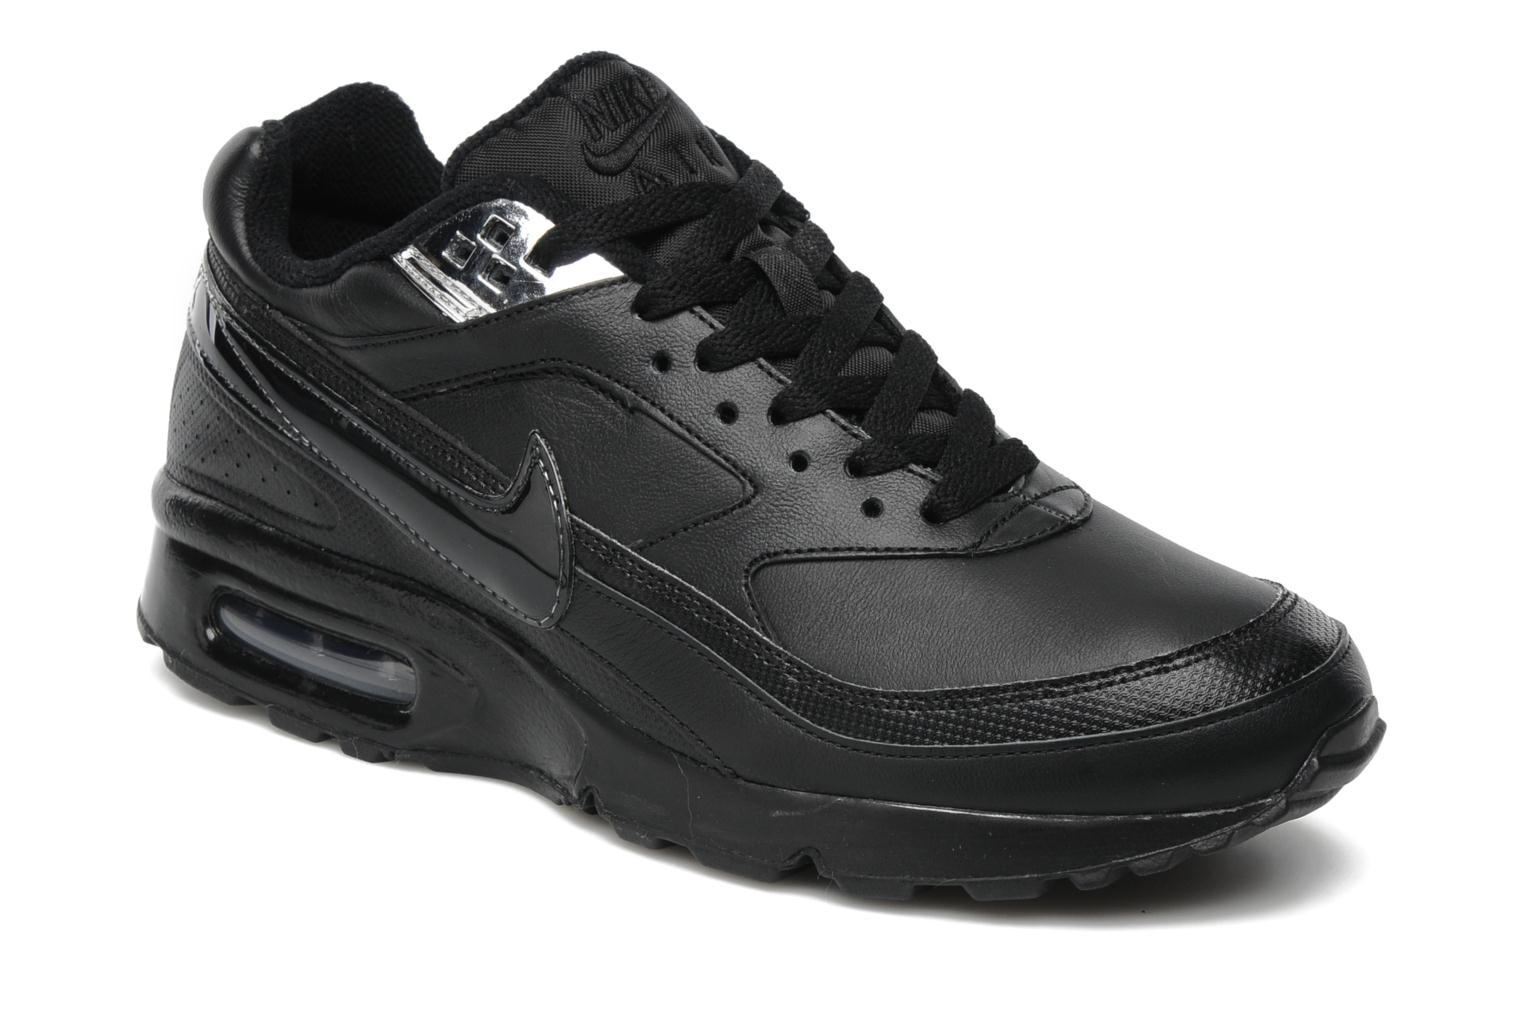 competitive price 4ccf3 94a07 ... italy nike air classic bw black chrome ab070 9d7c8